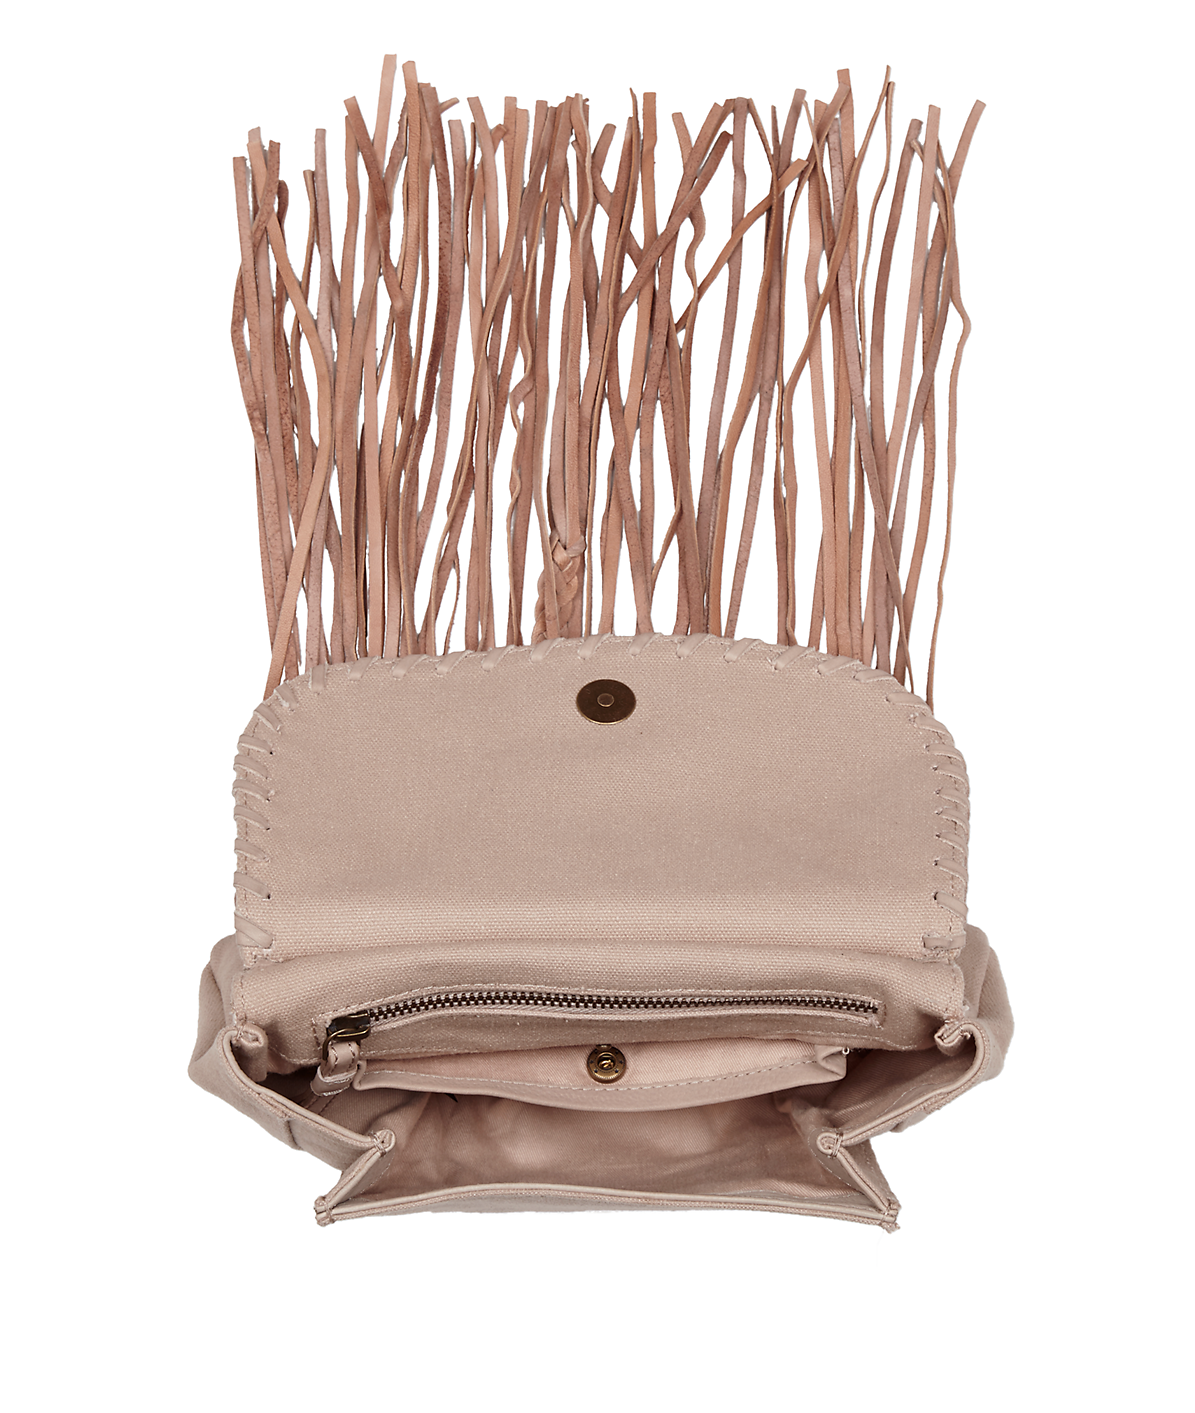 Adelaide shoulder bag from liebeskind